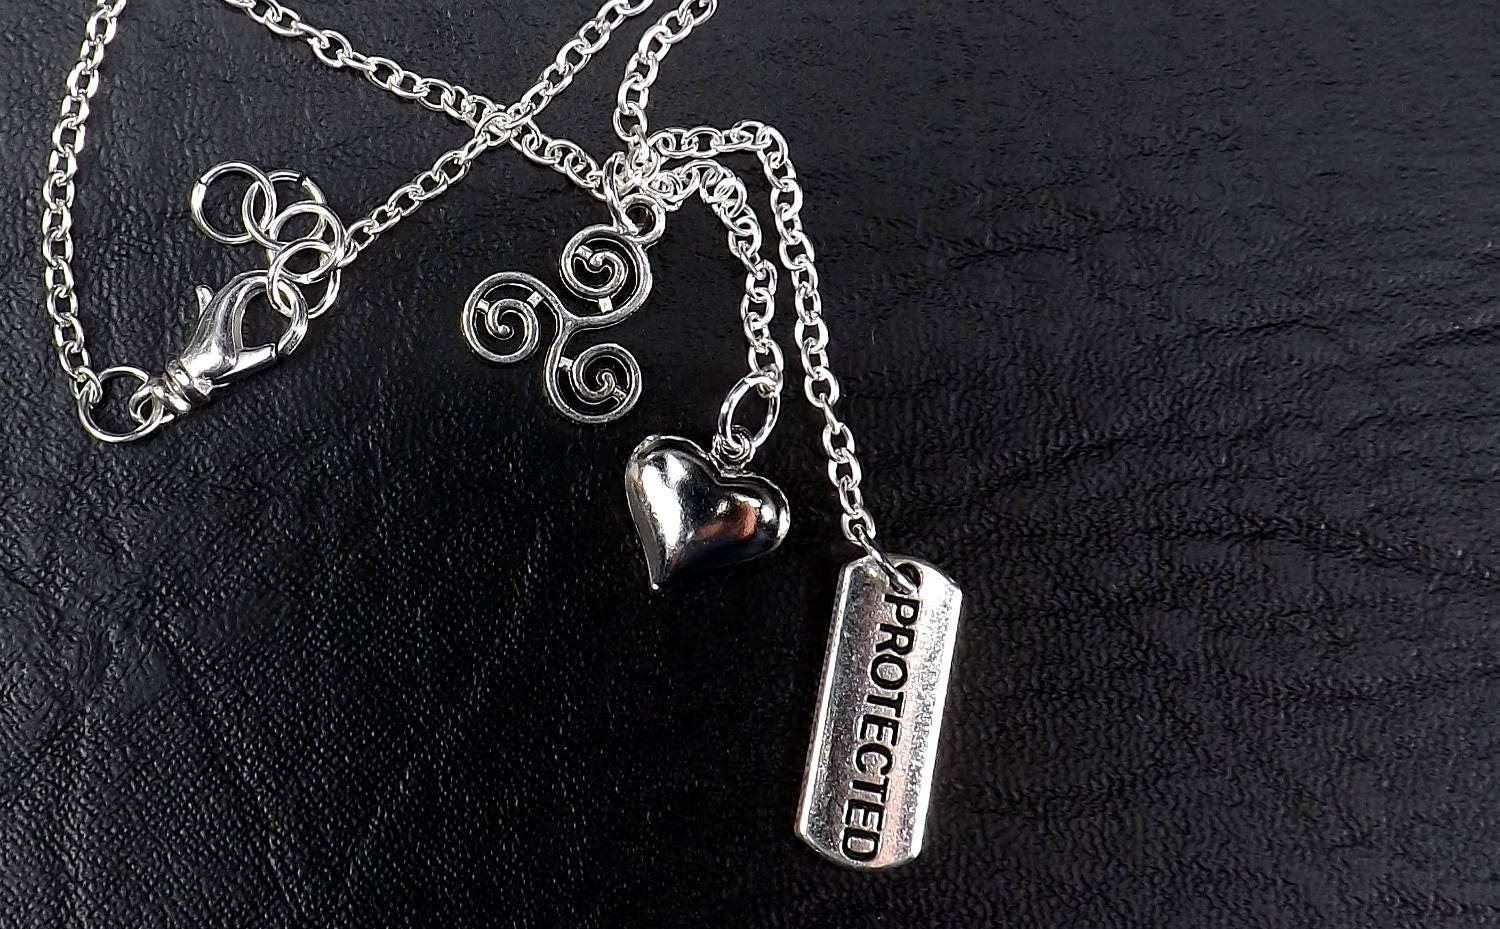 Triskelion Jewelry, protected and heart charm necklace Bdsm Necklace with Protected Charm mature Submissive Jewelry - product image